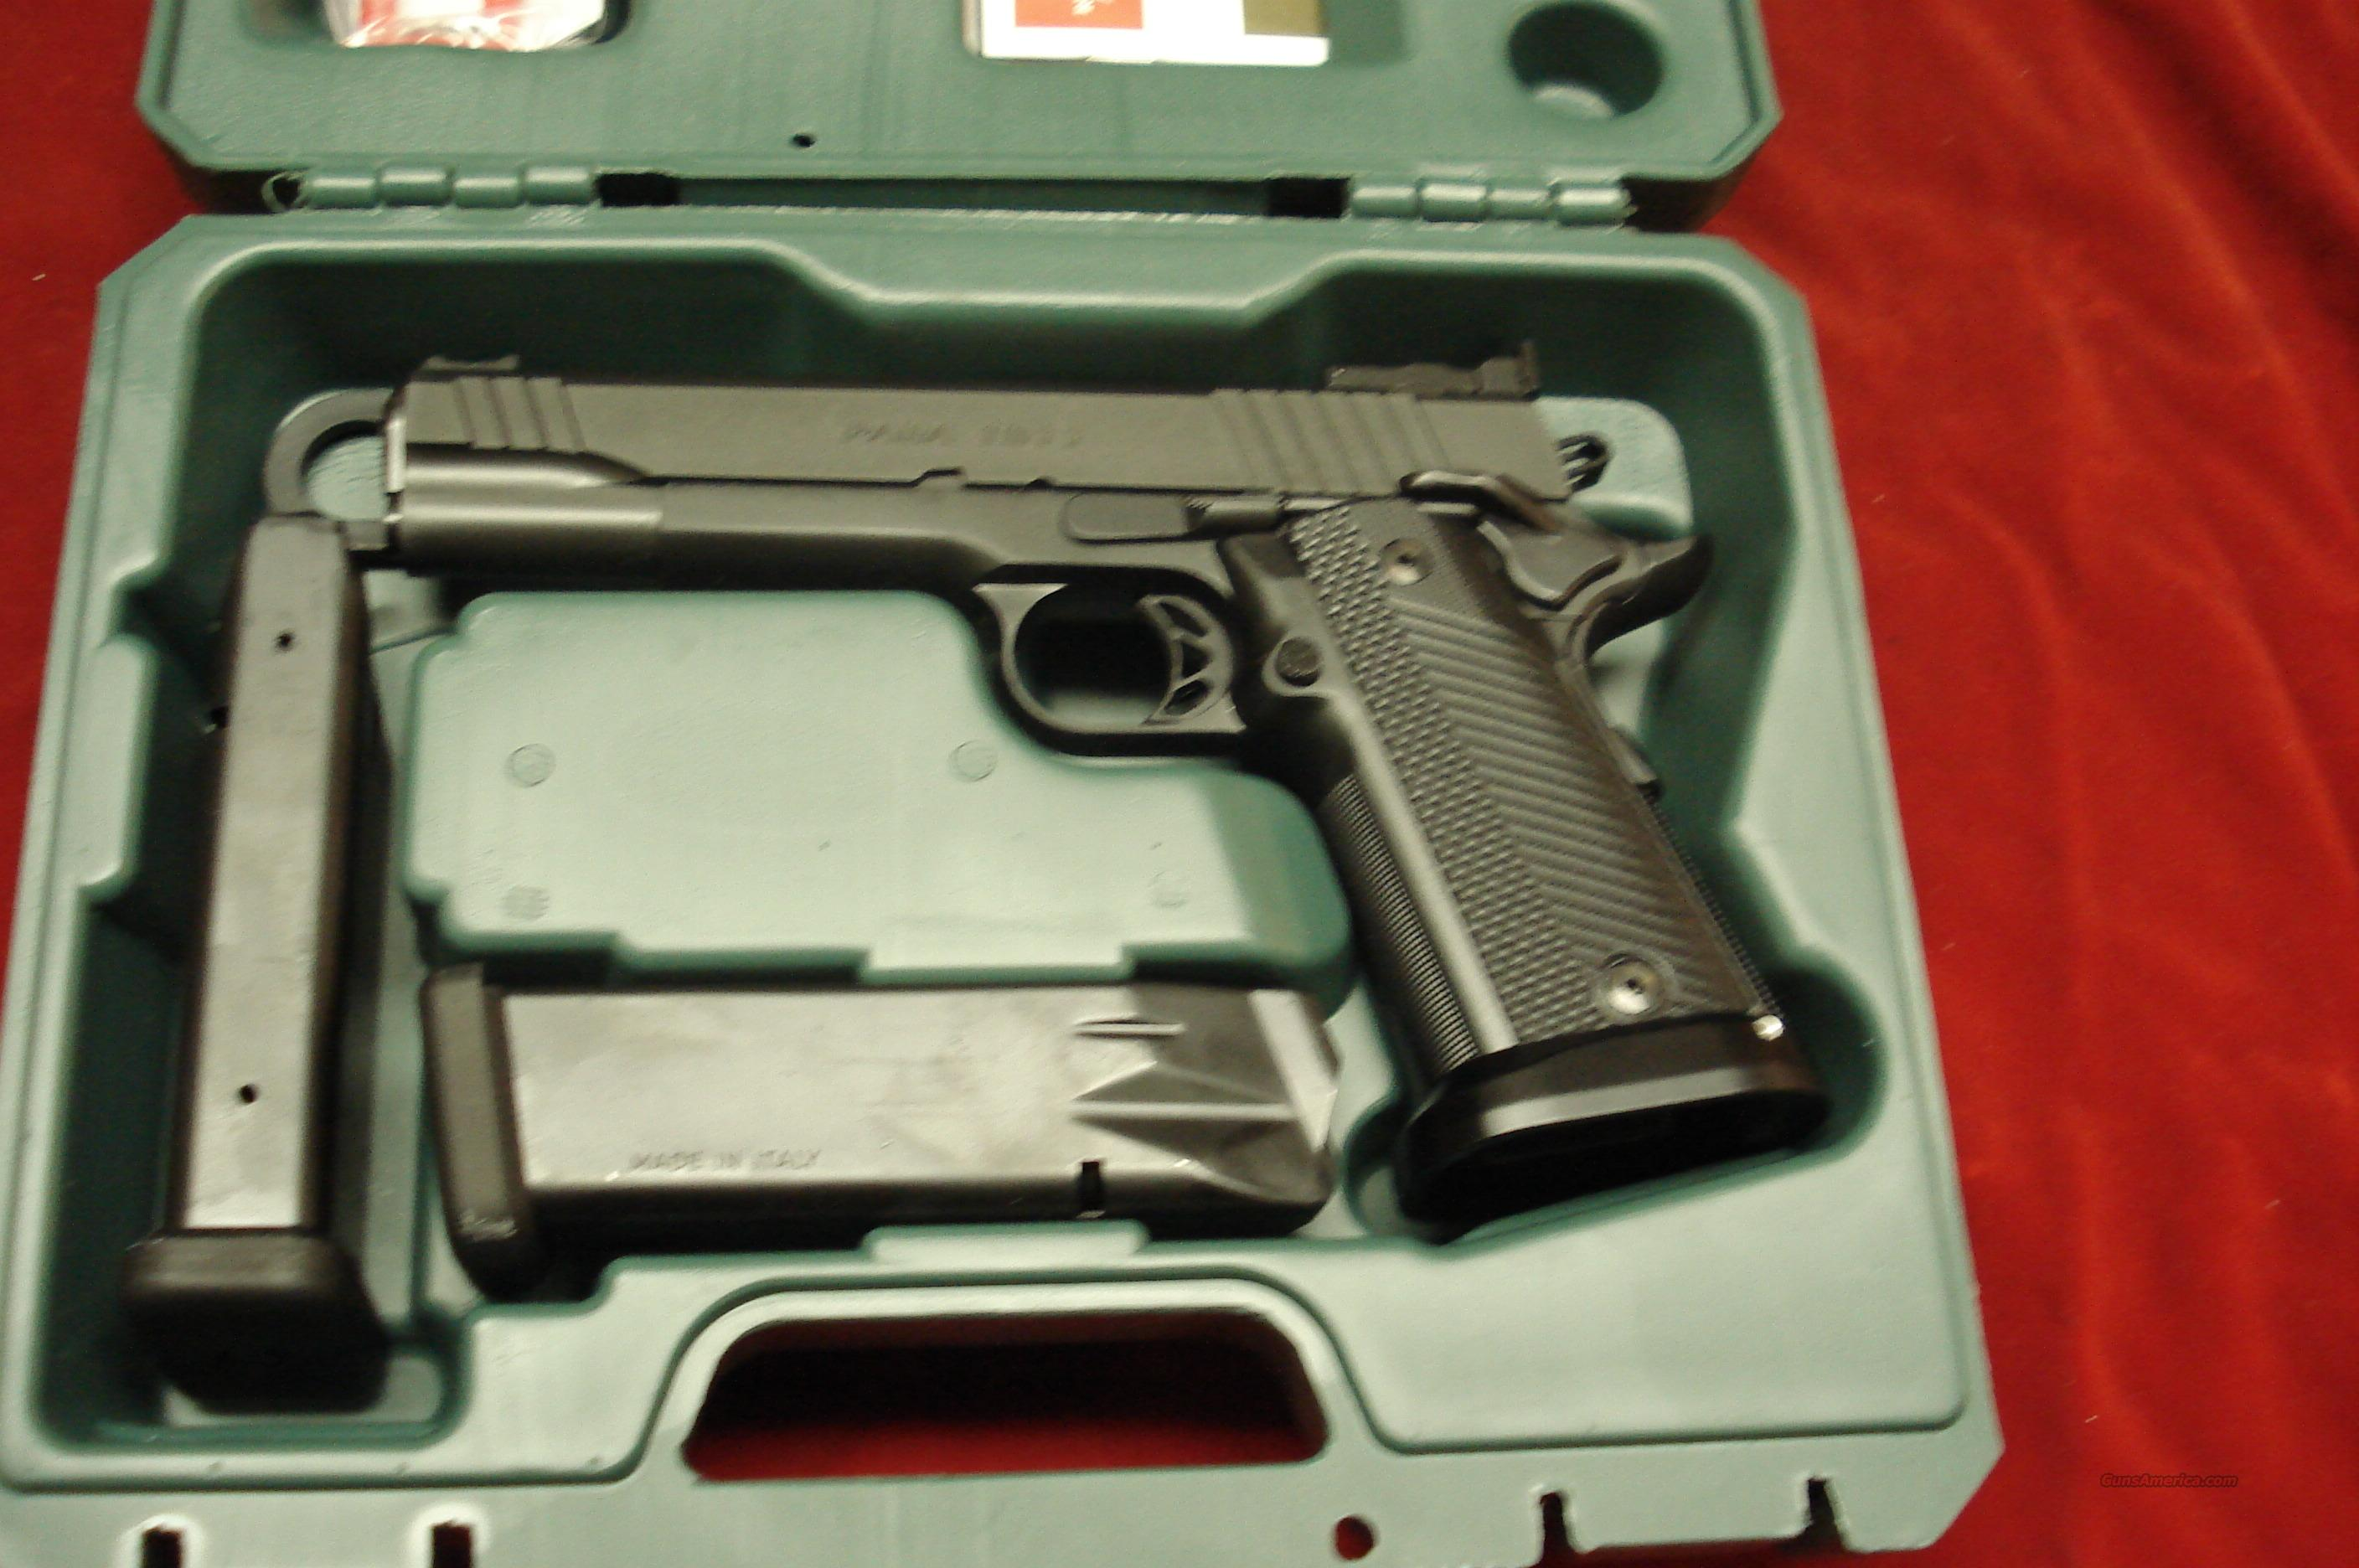 PARA ORDNANCE PRO CUSTOM STAINLESS BLACK IONBOND FINISH  P14-45  HIGH CAPACITY 1911 .45 ACP NEW  Guns > Pistols > Para Ordnance Pistols